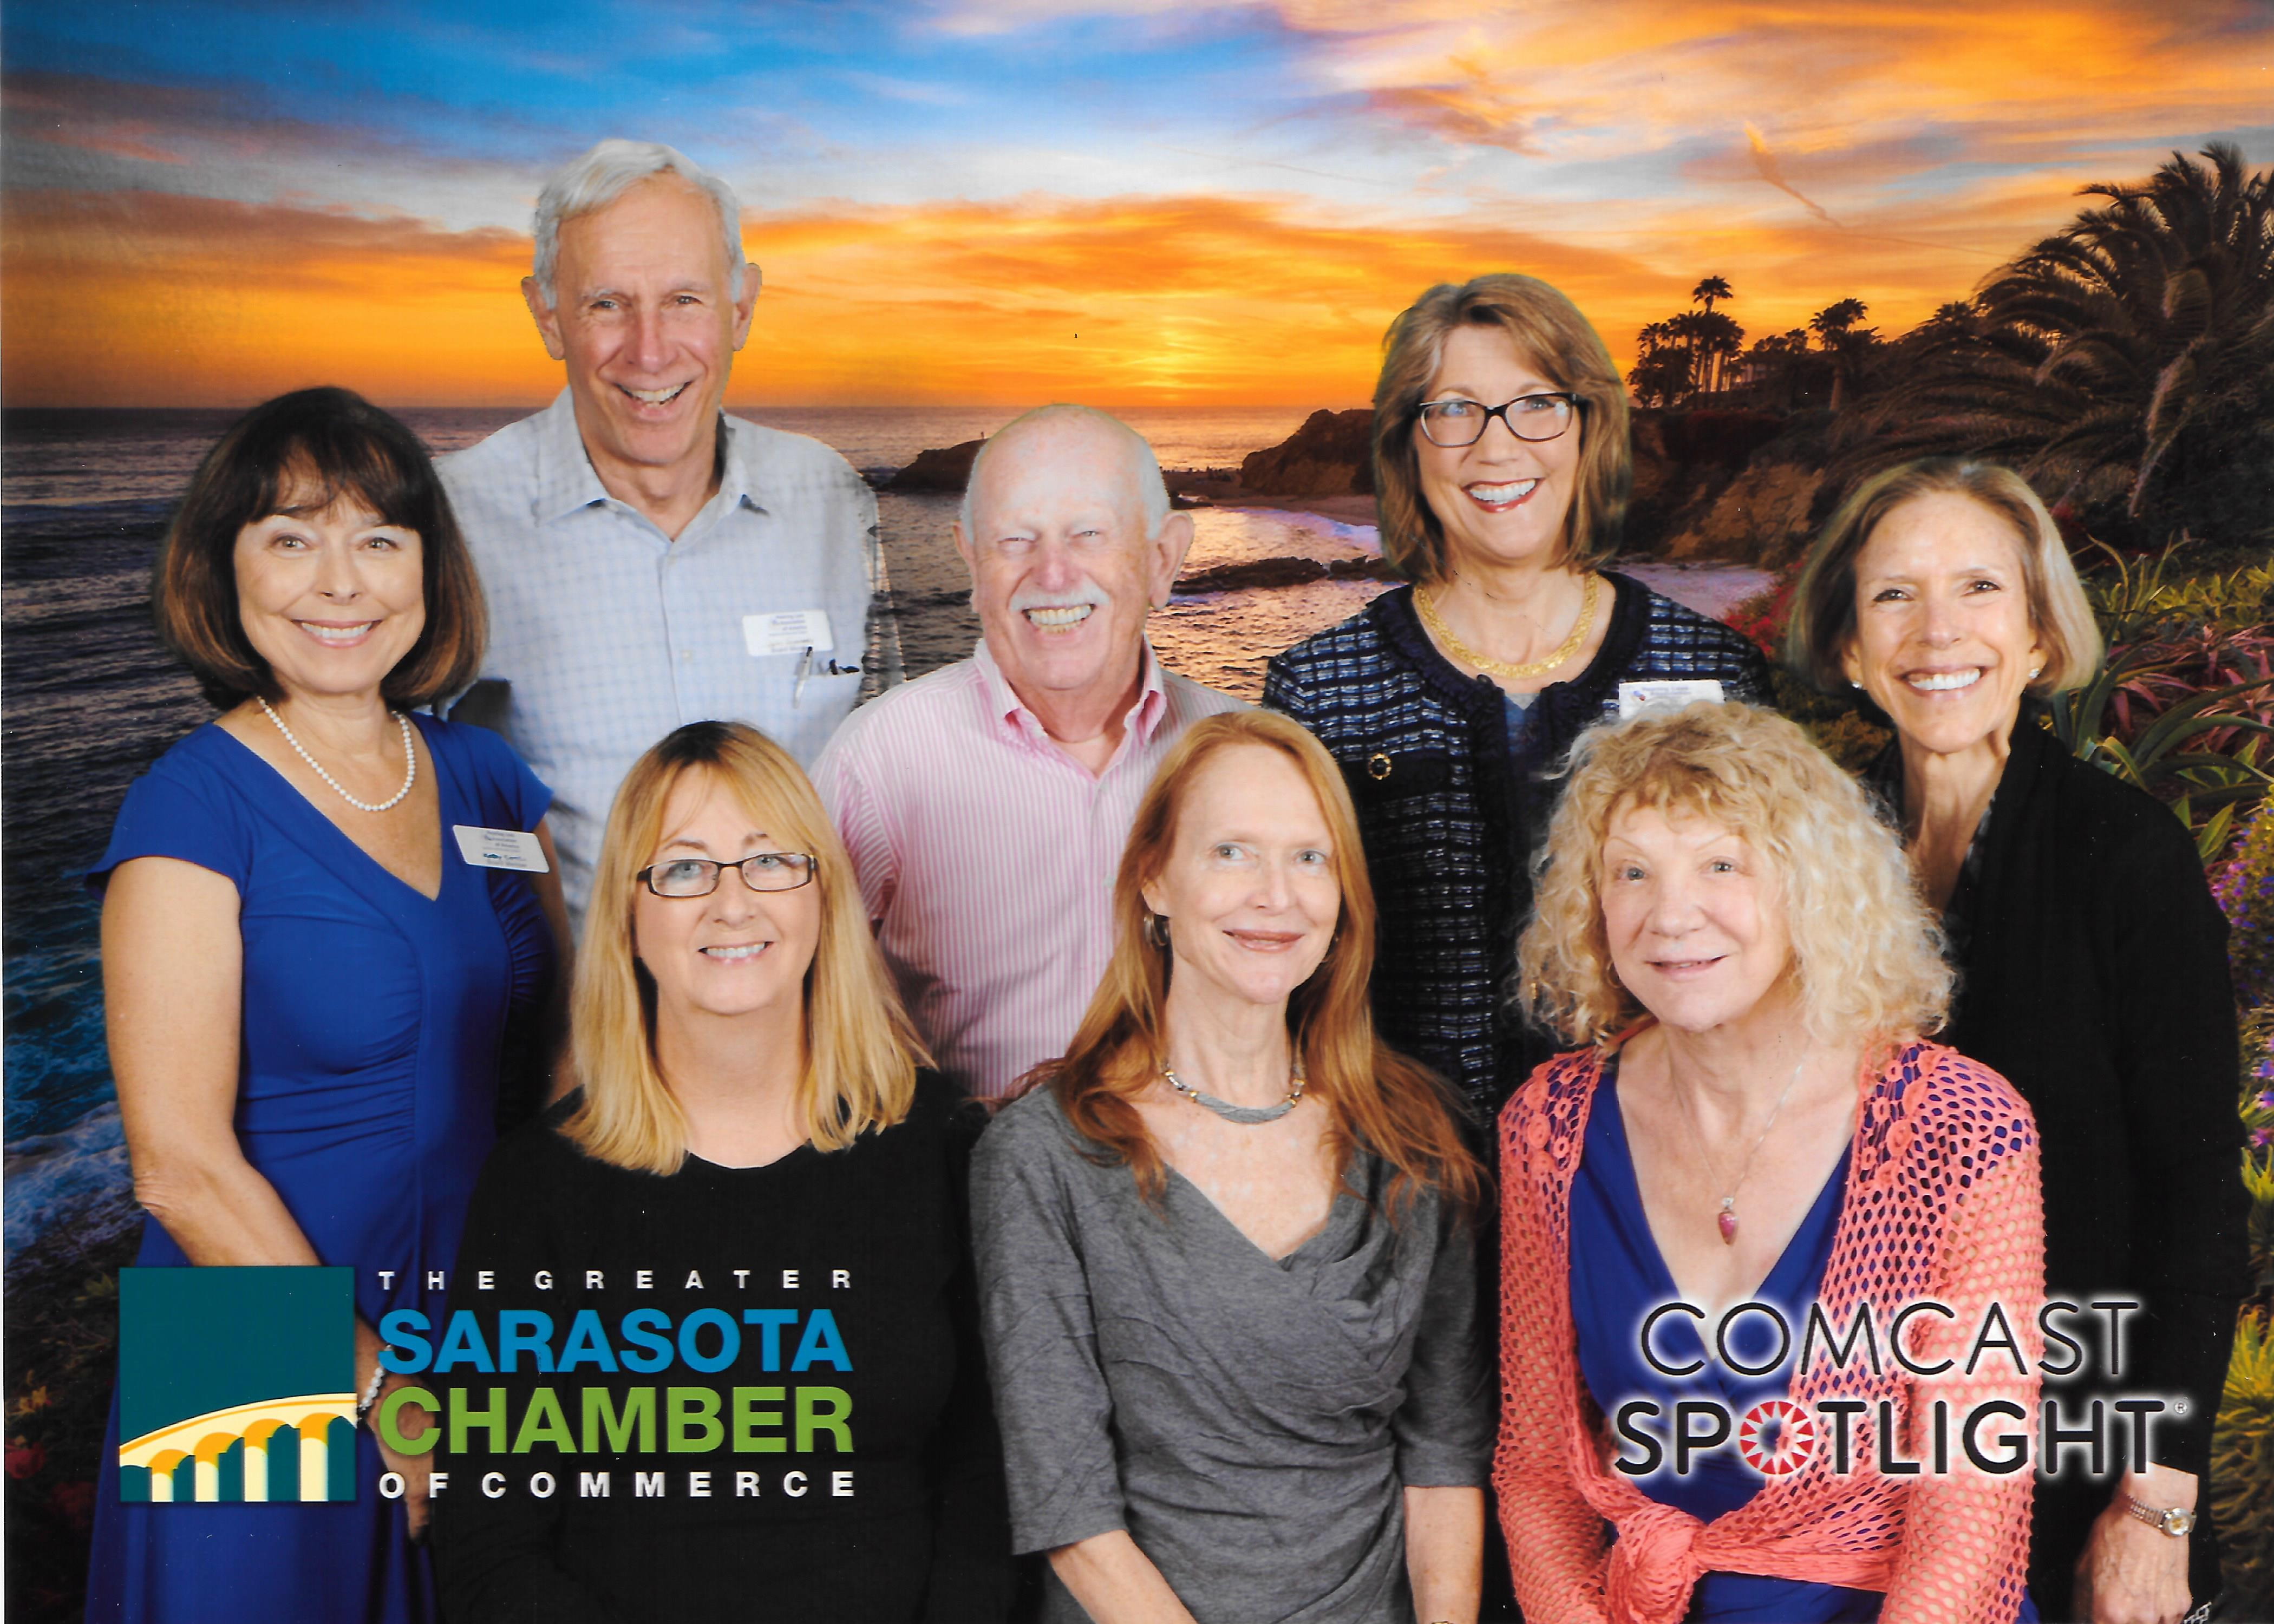 Chamber Award Sunset Background 6.1.2017